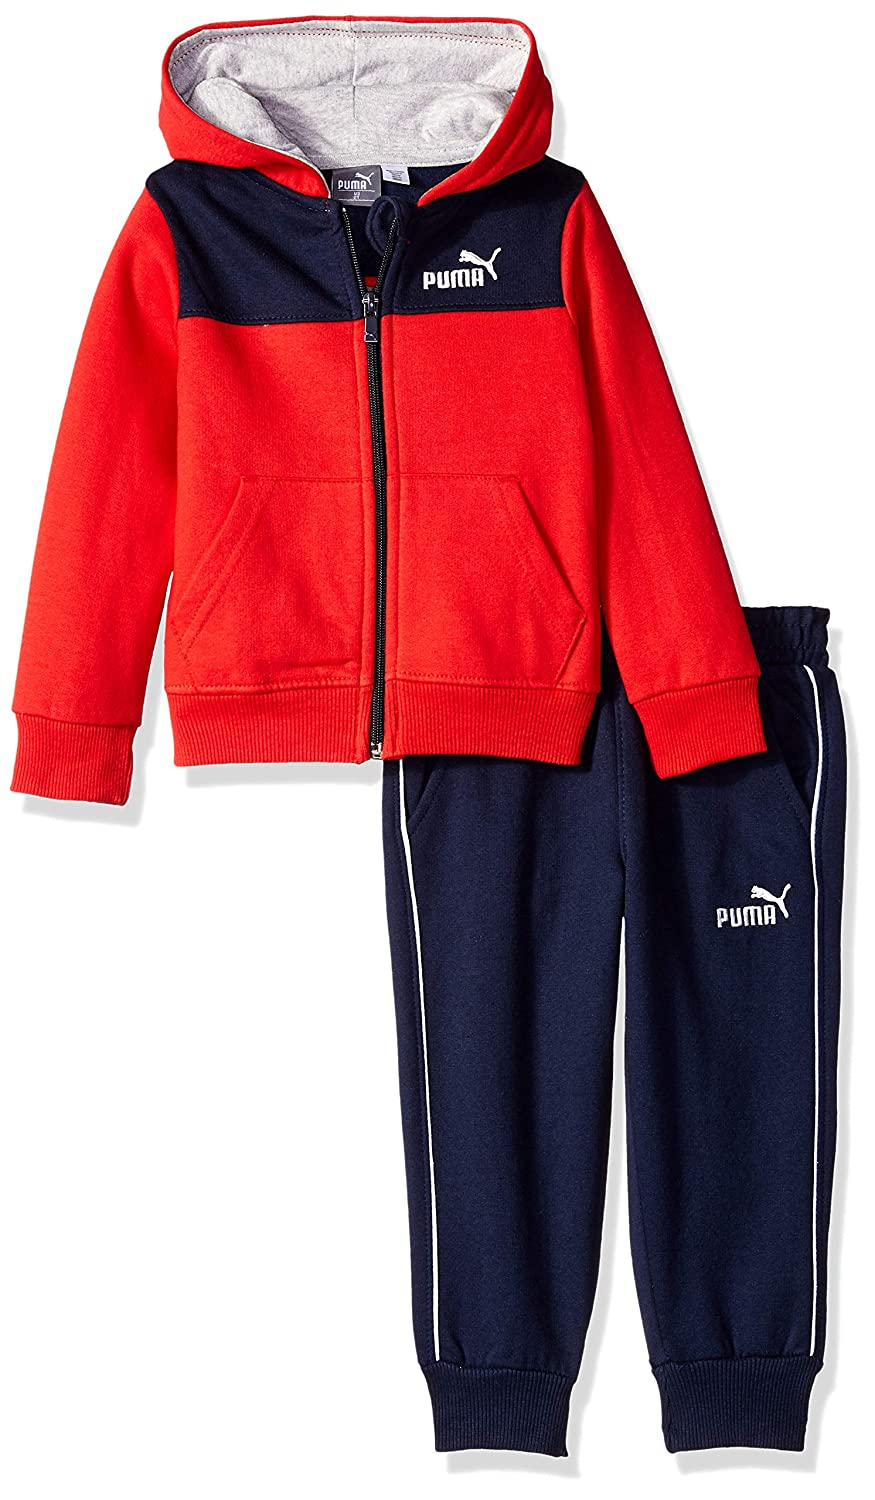 PUMA Boys Toddler Boys Boys' Fleece Zip Up Hoodie Set